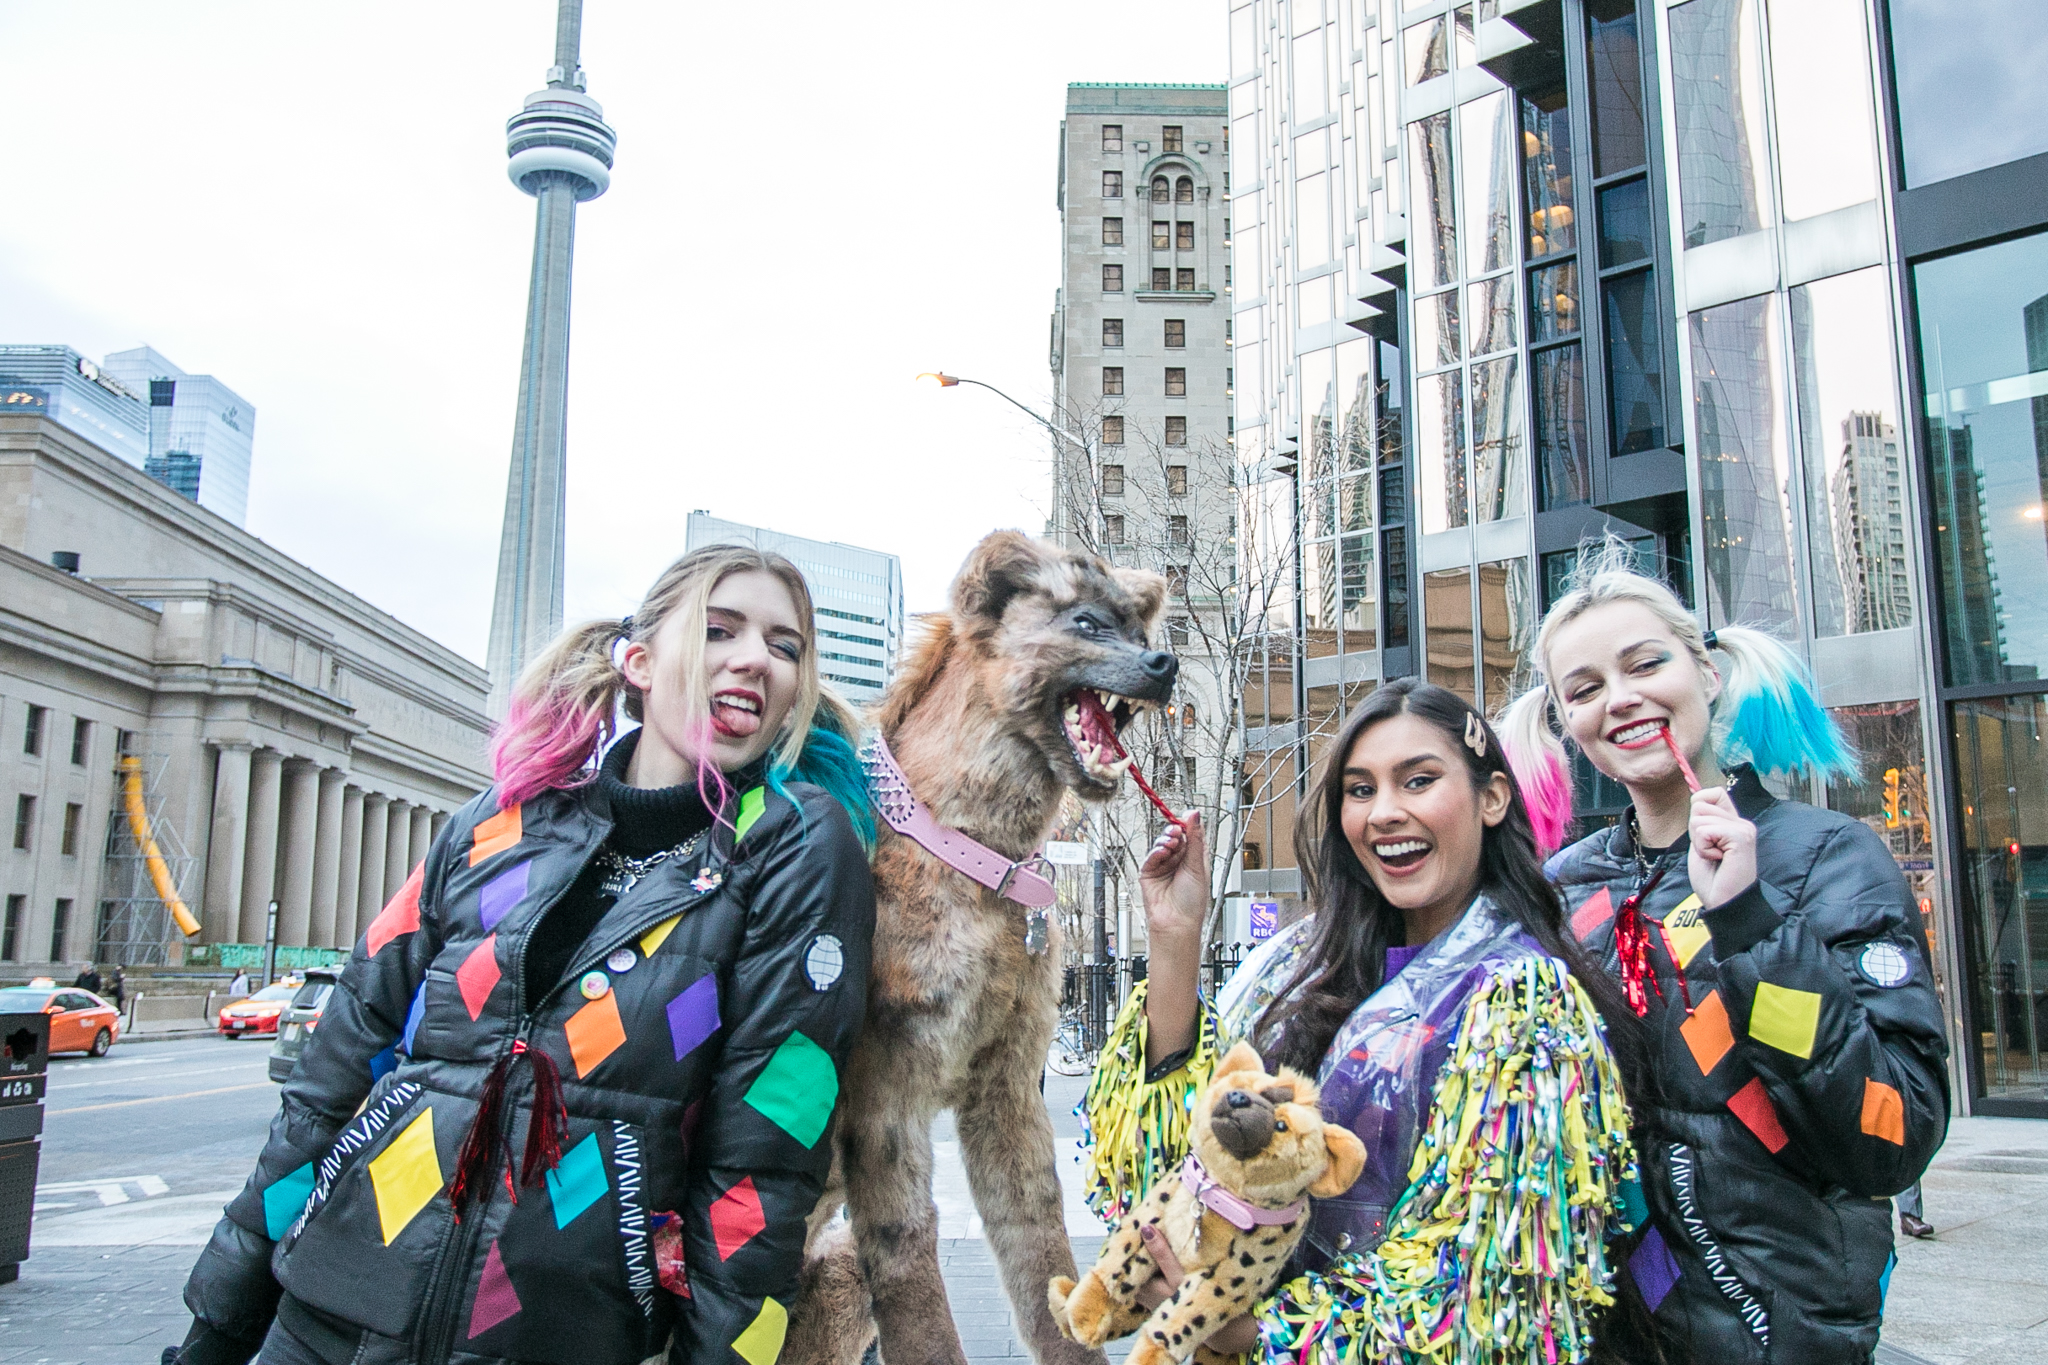 Blogto On Twitter Warnerbrosca Is Taking Over Toronto With Harley Quinn S Pet Hyena To Celebrate The Release Of Birdsofprey Catch Bruce At Yorkdale This Weekend From Thurs To Sat Bop Hits Theatres